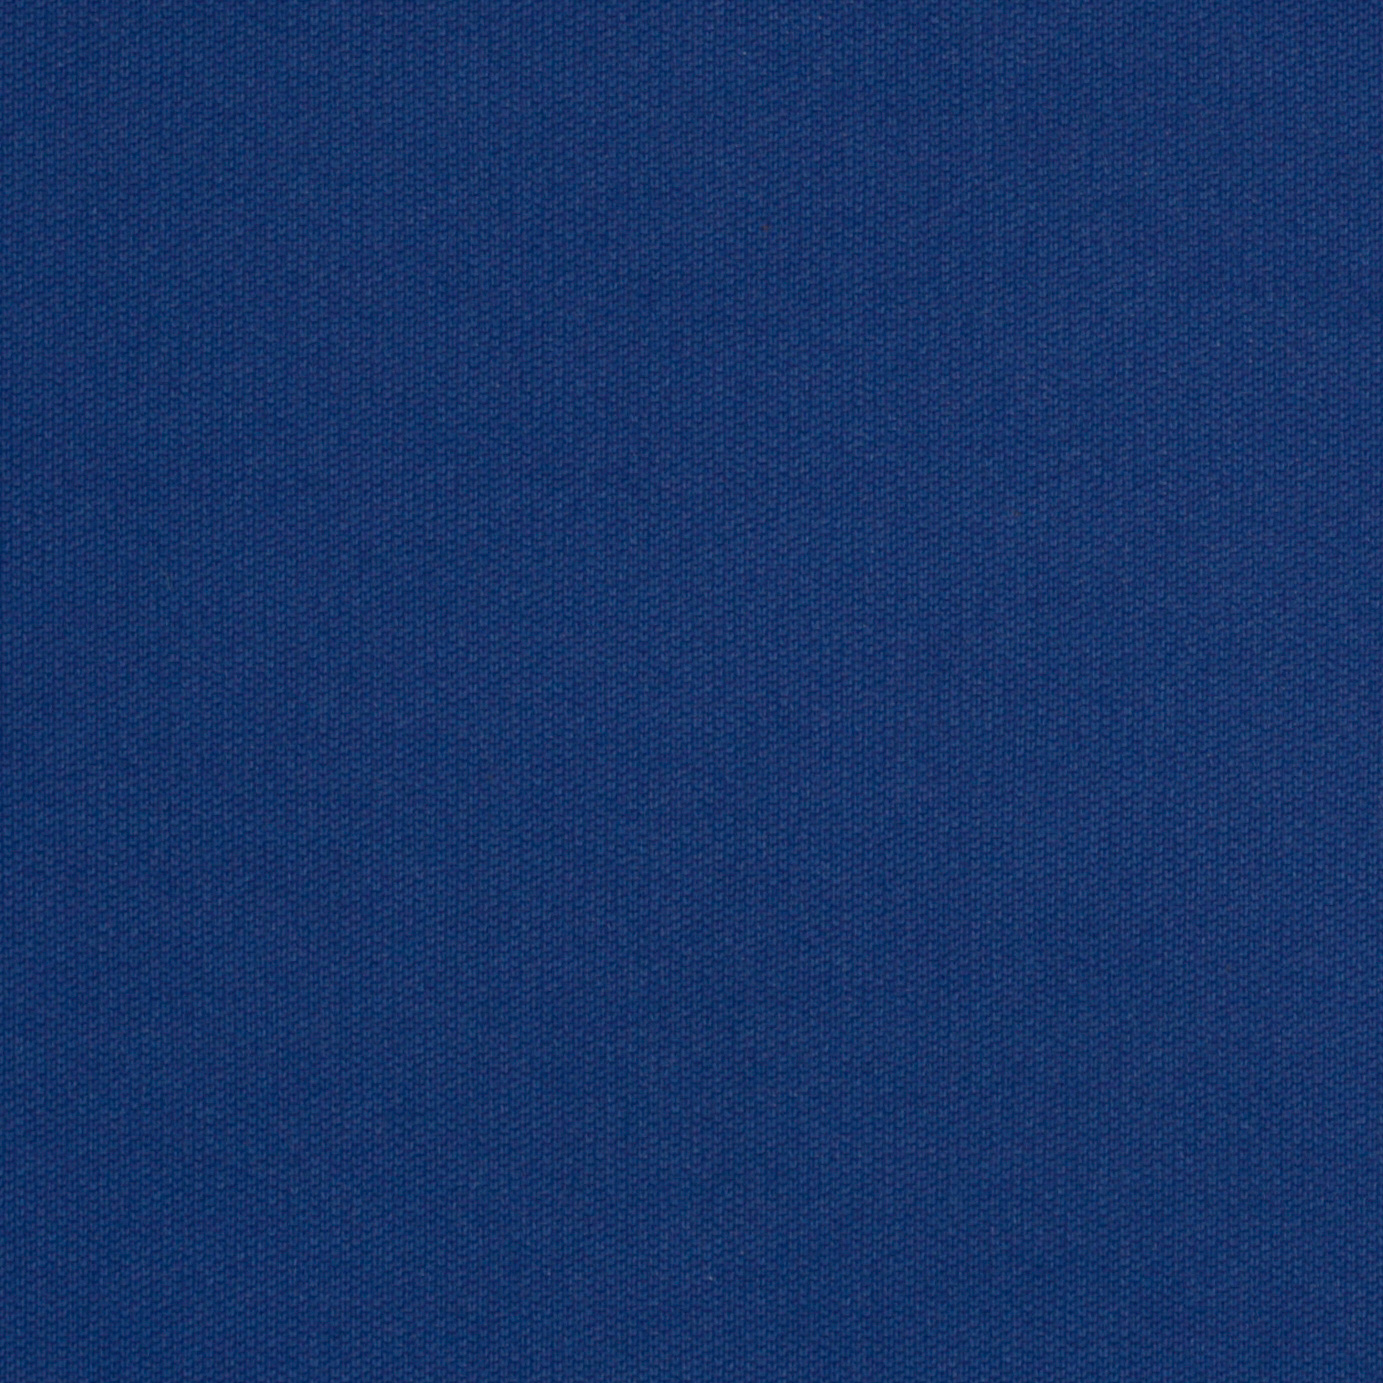 Akas Tex Pul (polyurethane Laminate) 1mil Royal Blue Fabric